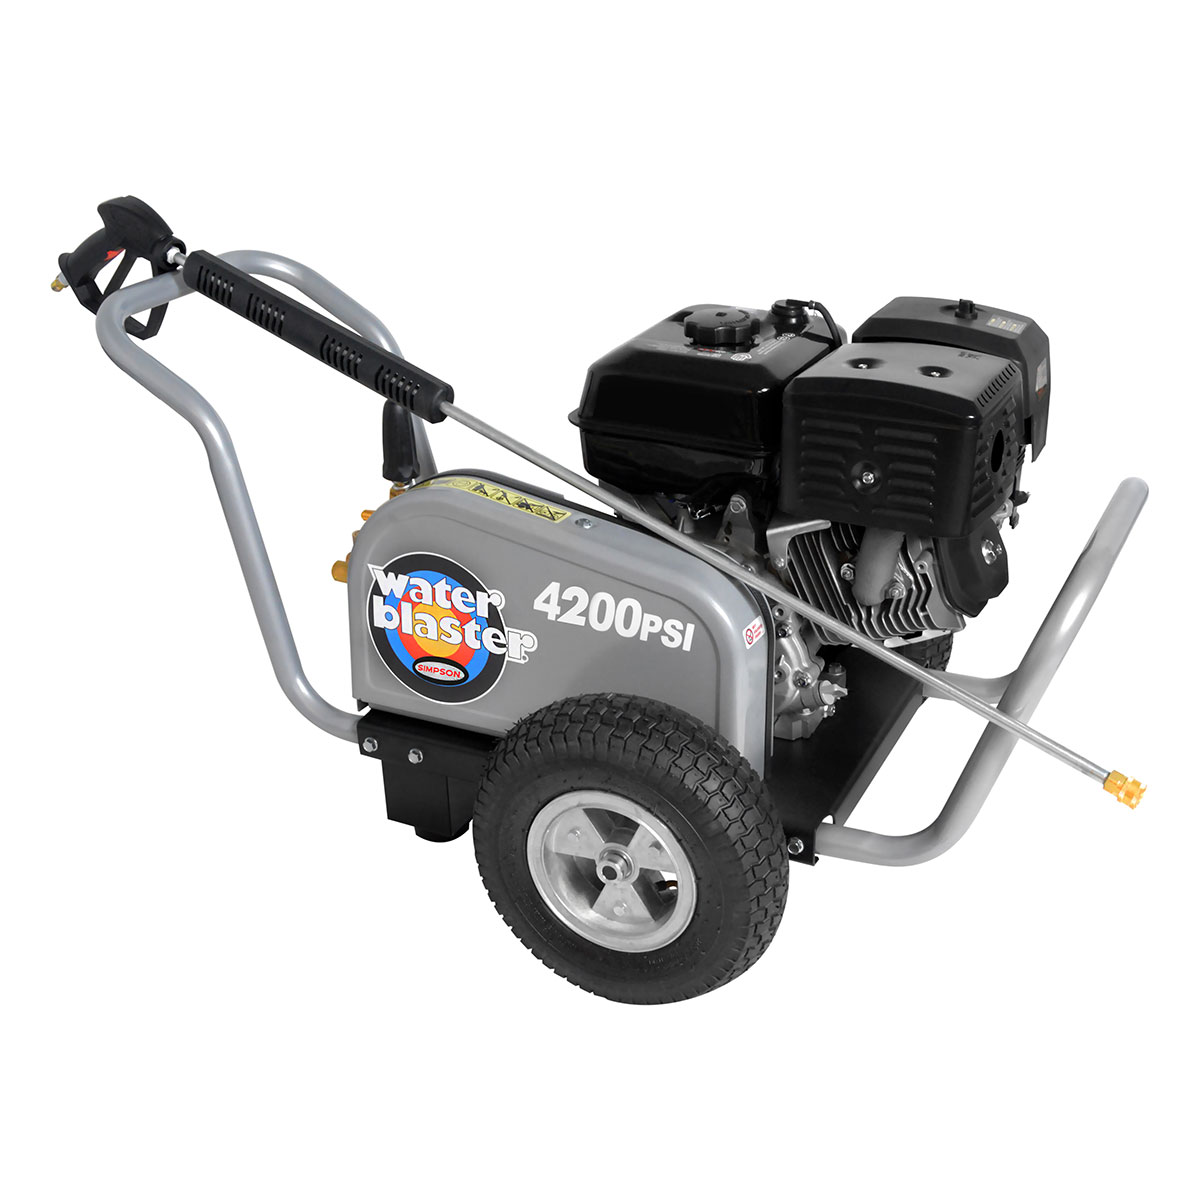 4200 PSI Water Blaster Series - Commercial Belt Drive Pressure Washer with a Honda GX 390 engine and a 50' hose - WB4200